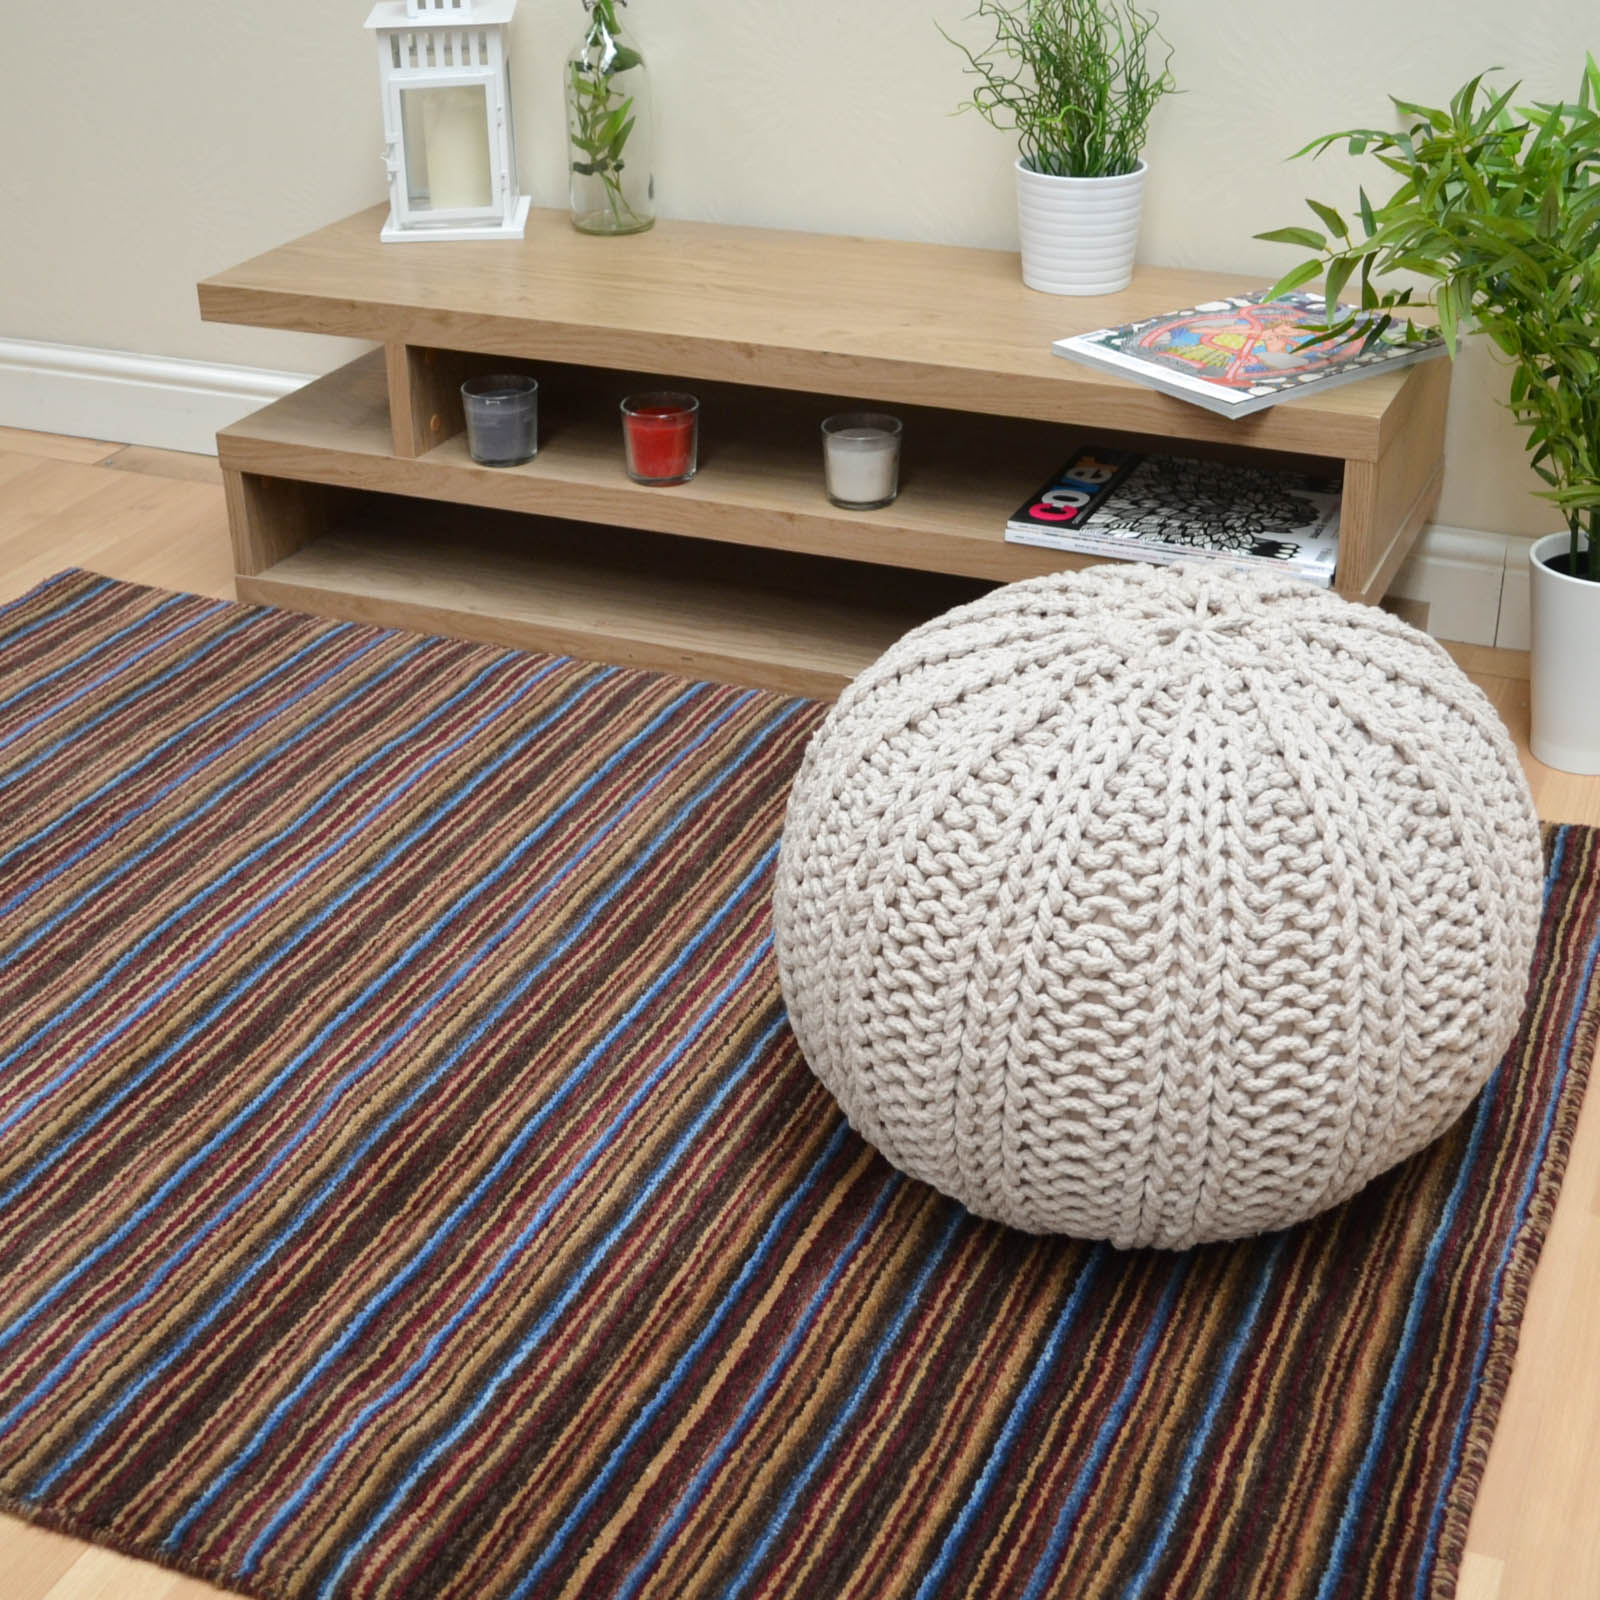 Seasons Loom Knotted Striped Wool Rugs SEA04 in Multi